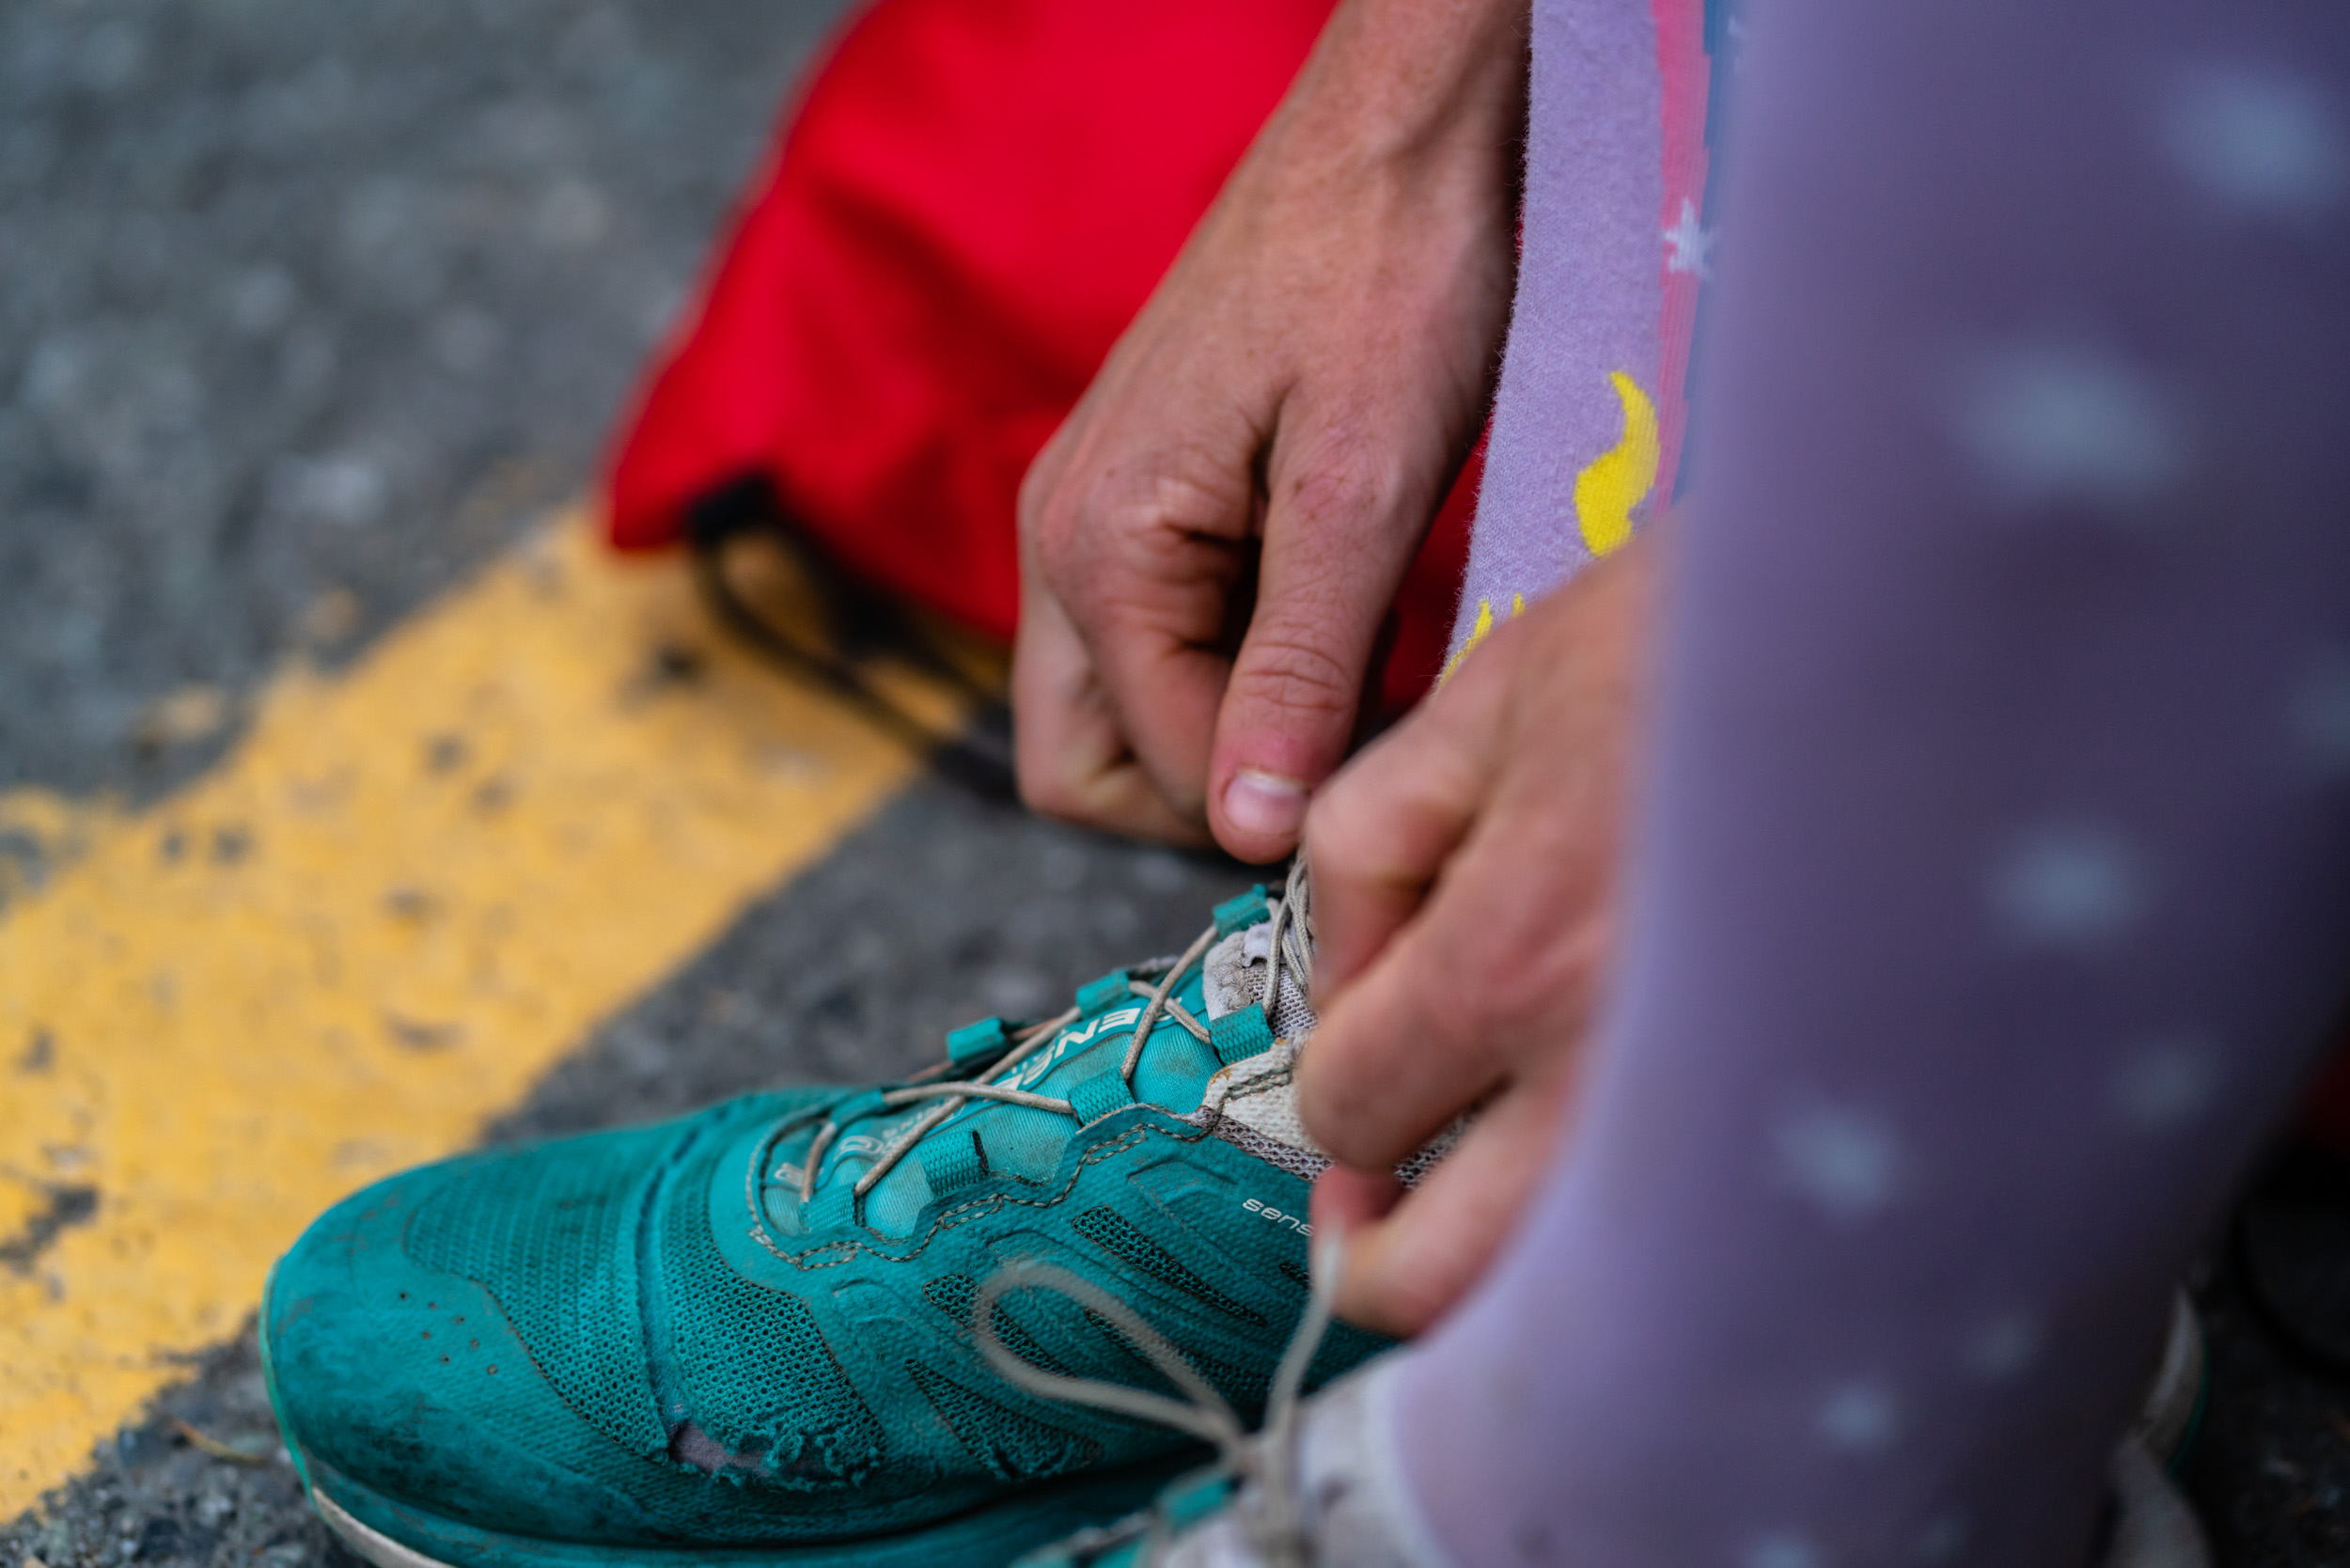 Alicia Woodside tying her shoes as she gets ready to go for a trail run, Squamish, British Columbia